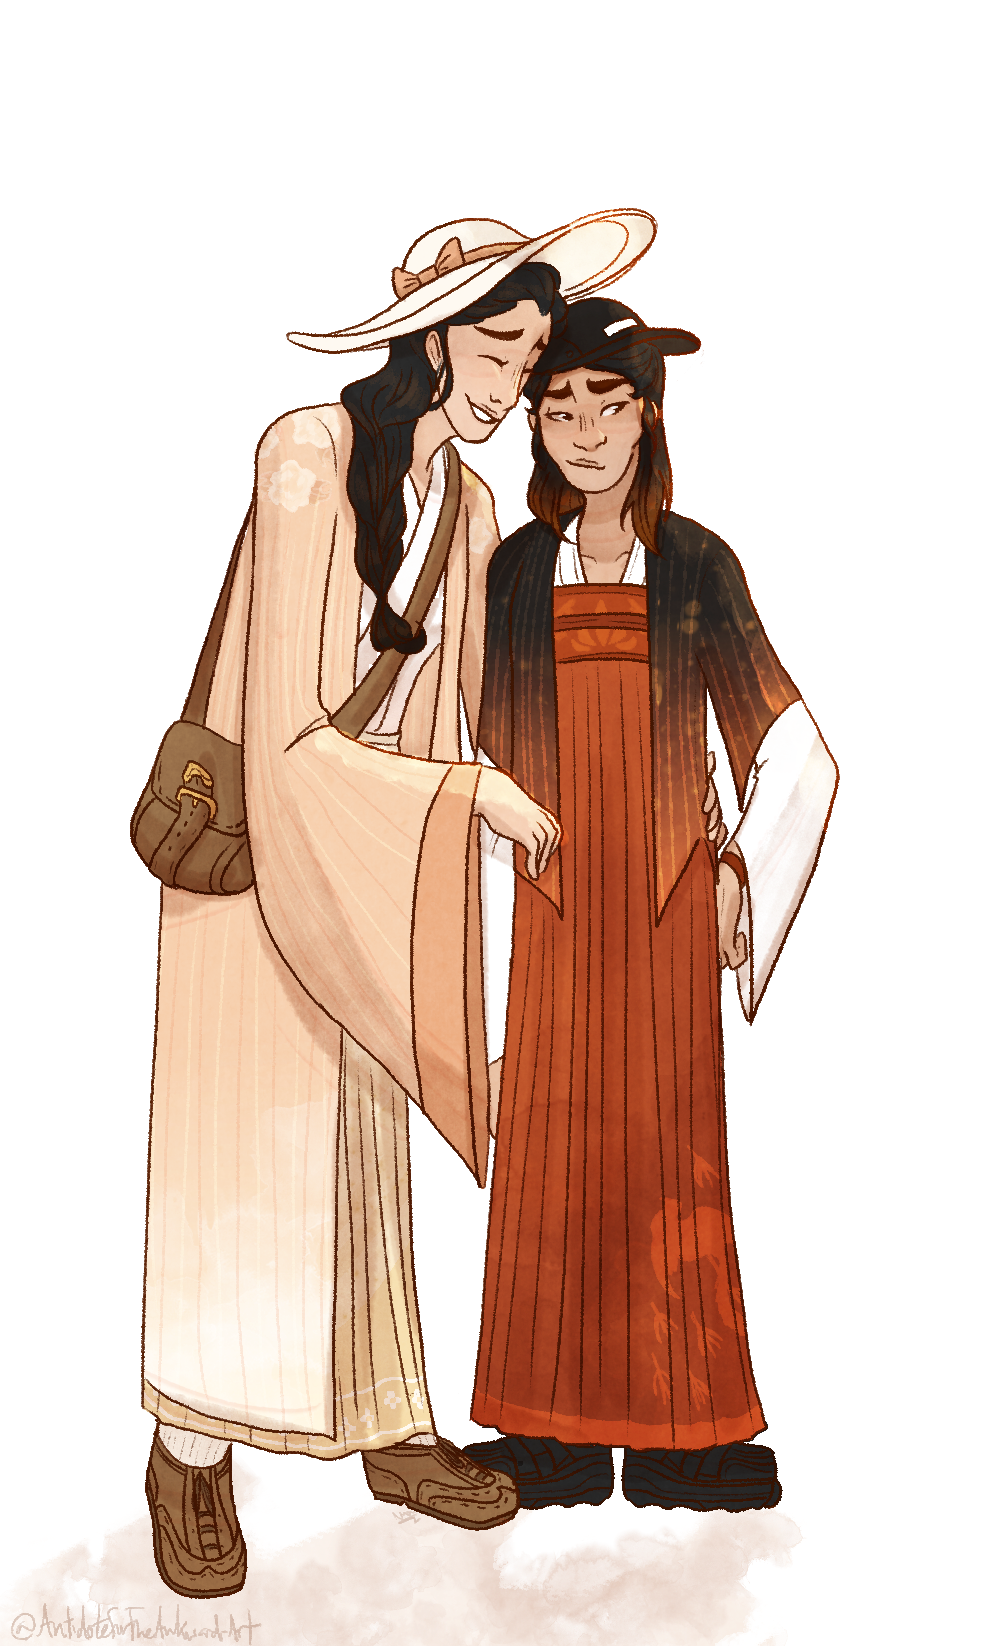 *thinks about modern hanfu* *thinks about modern hanfu* *thinks about modern hanfu* *thinks about modern hanfu* *thinks about mo #my art#original art#Chinese hanfu #hanfu revival movement #hanfu movement#ocs #trinity and demetria #trinity wang#demetria chen #oh my god I havent drawn them in so long....  #theyre on a date in guangdong #character design #being a hanfu designer would be fun....